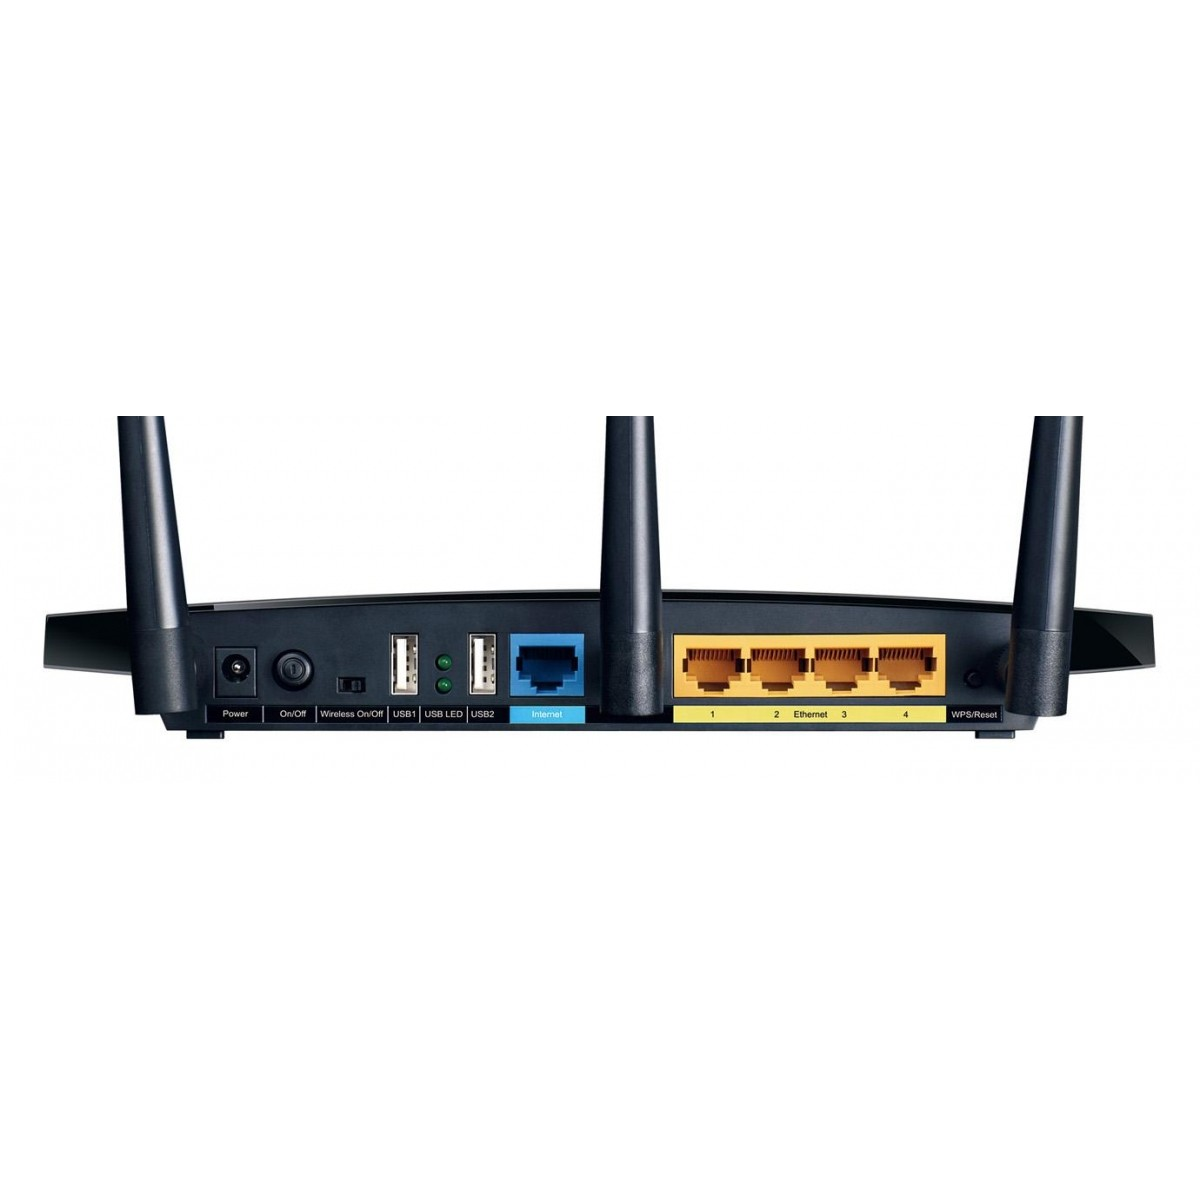 Roteador Wireless Gigabit Dual-band Router Ac1750 Archer C7 V5